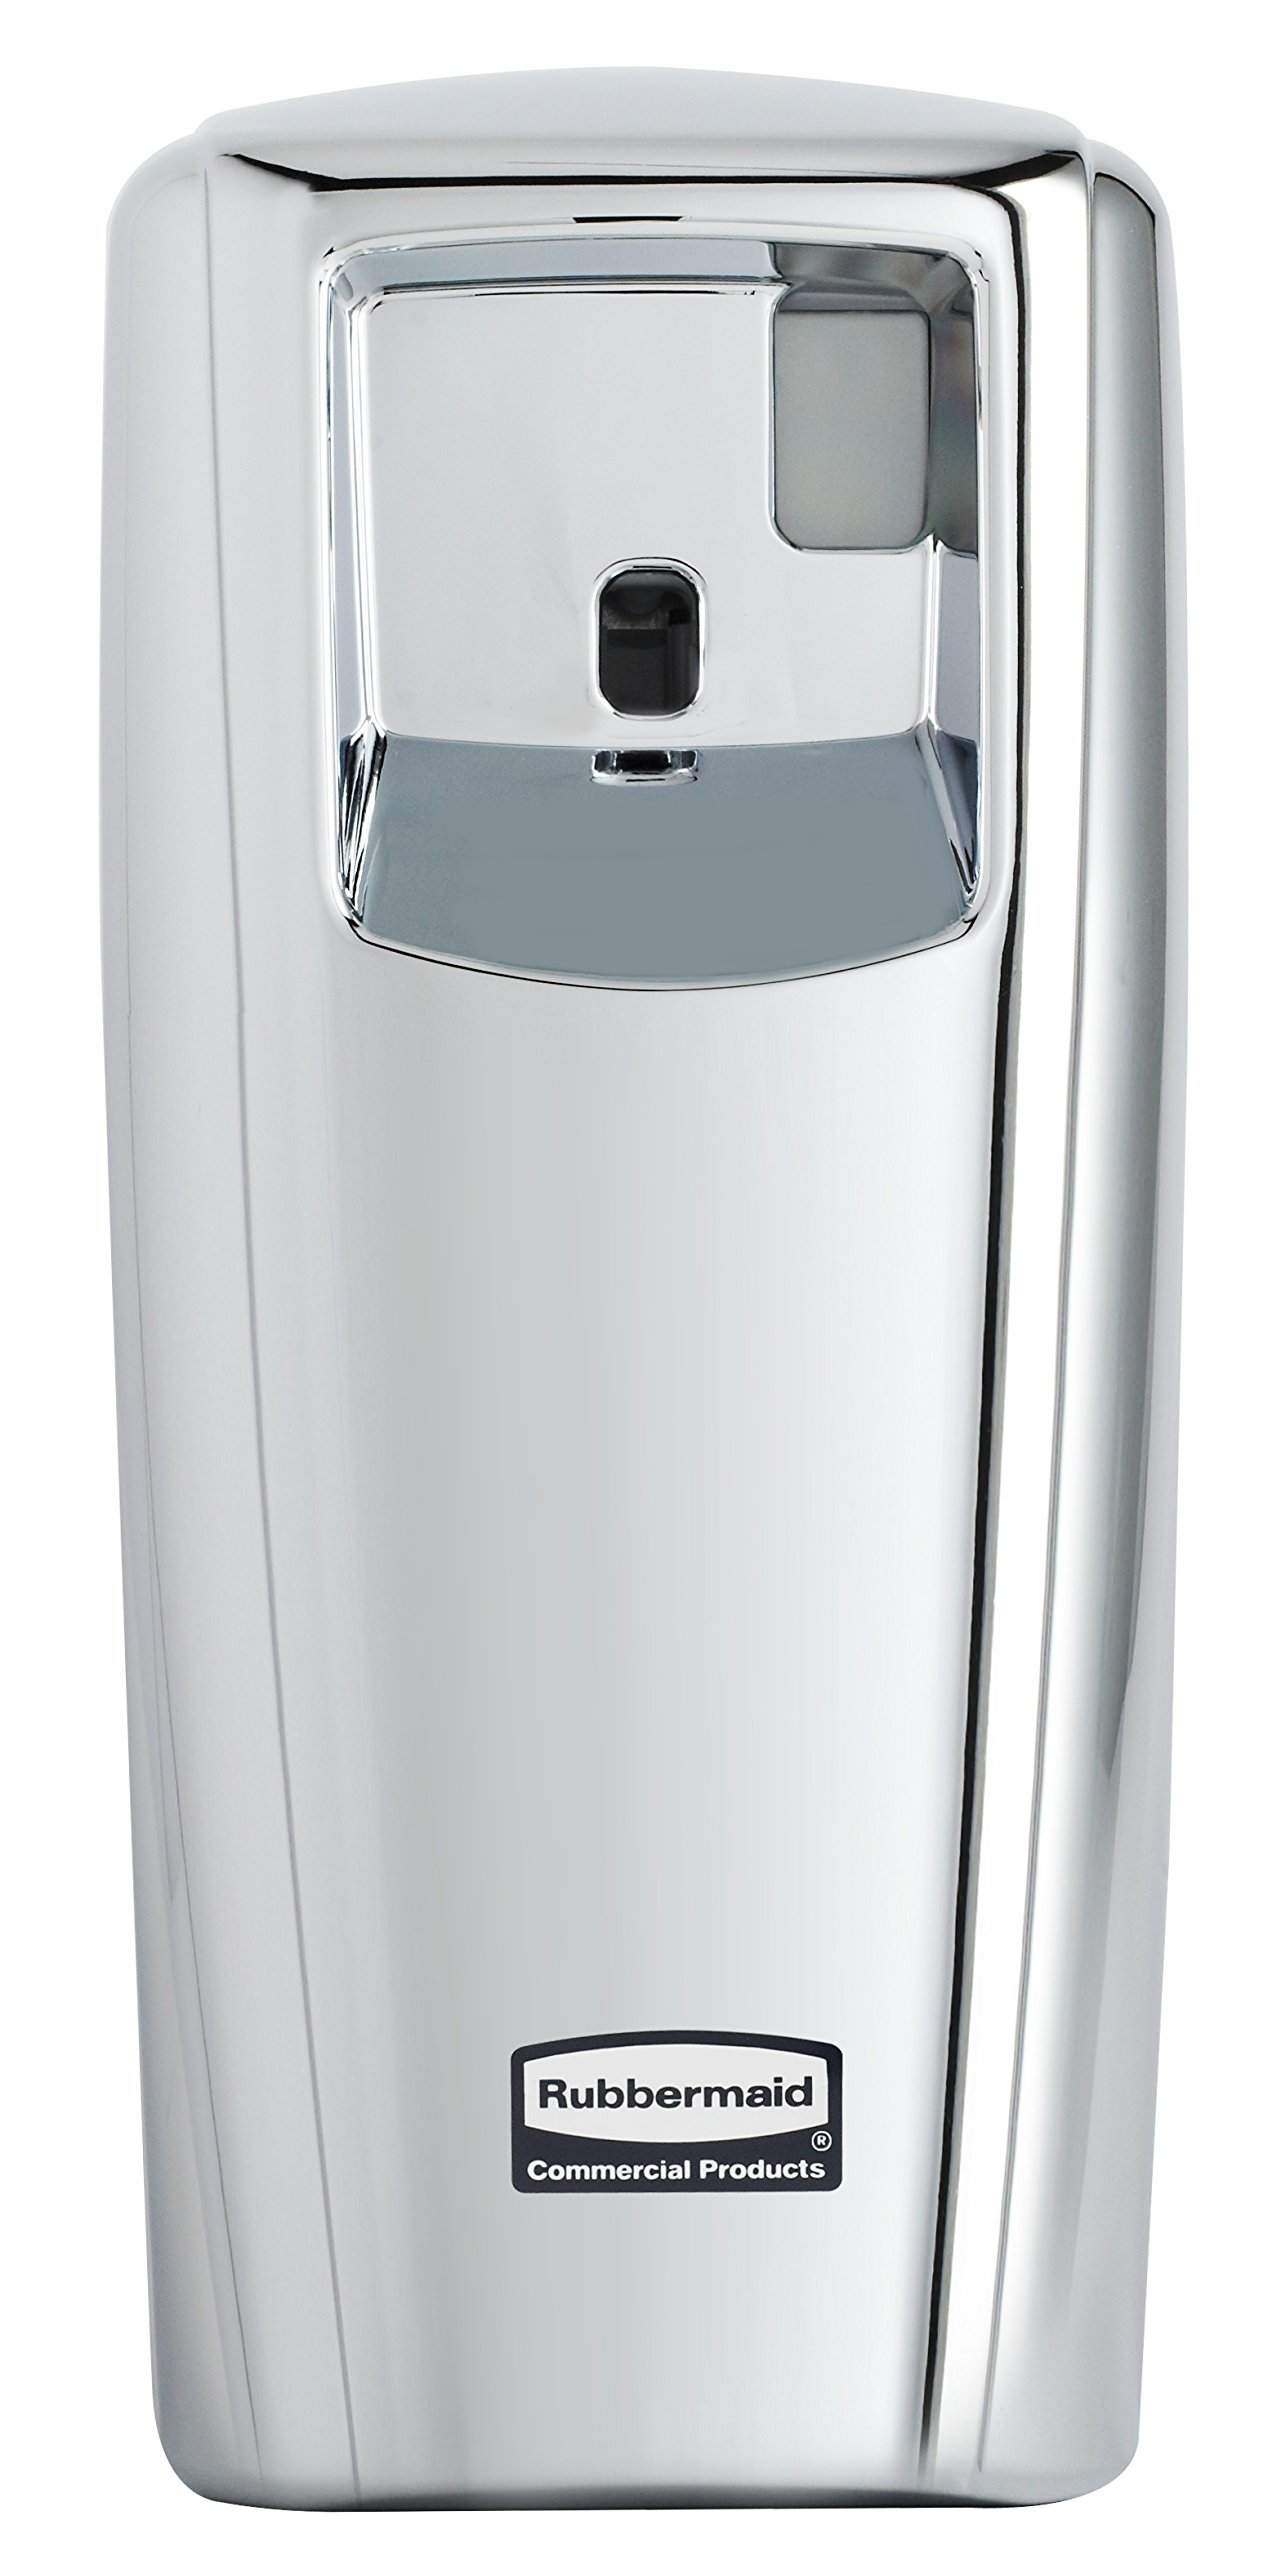 Rubbermaid Commercial Products 1793536 Microburst Automated Odor-Controlling Aerosol Air Care System, MB9000 Dispenser, 9000 m, Chrome by Rubbermaid Commercial Products